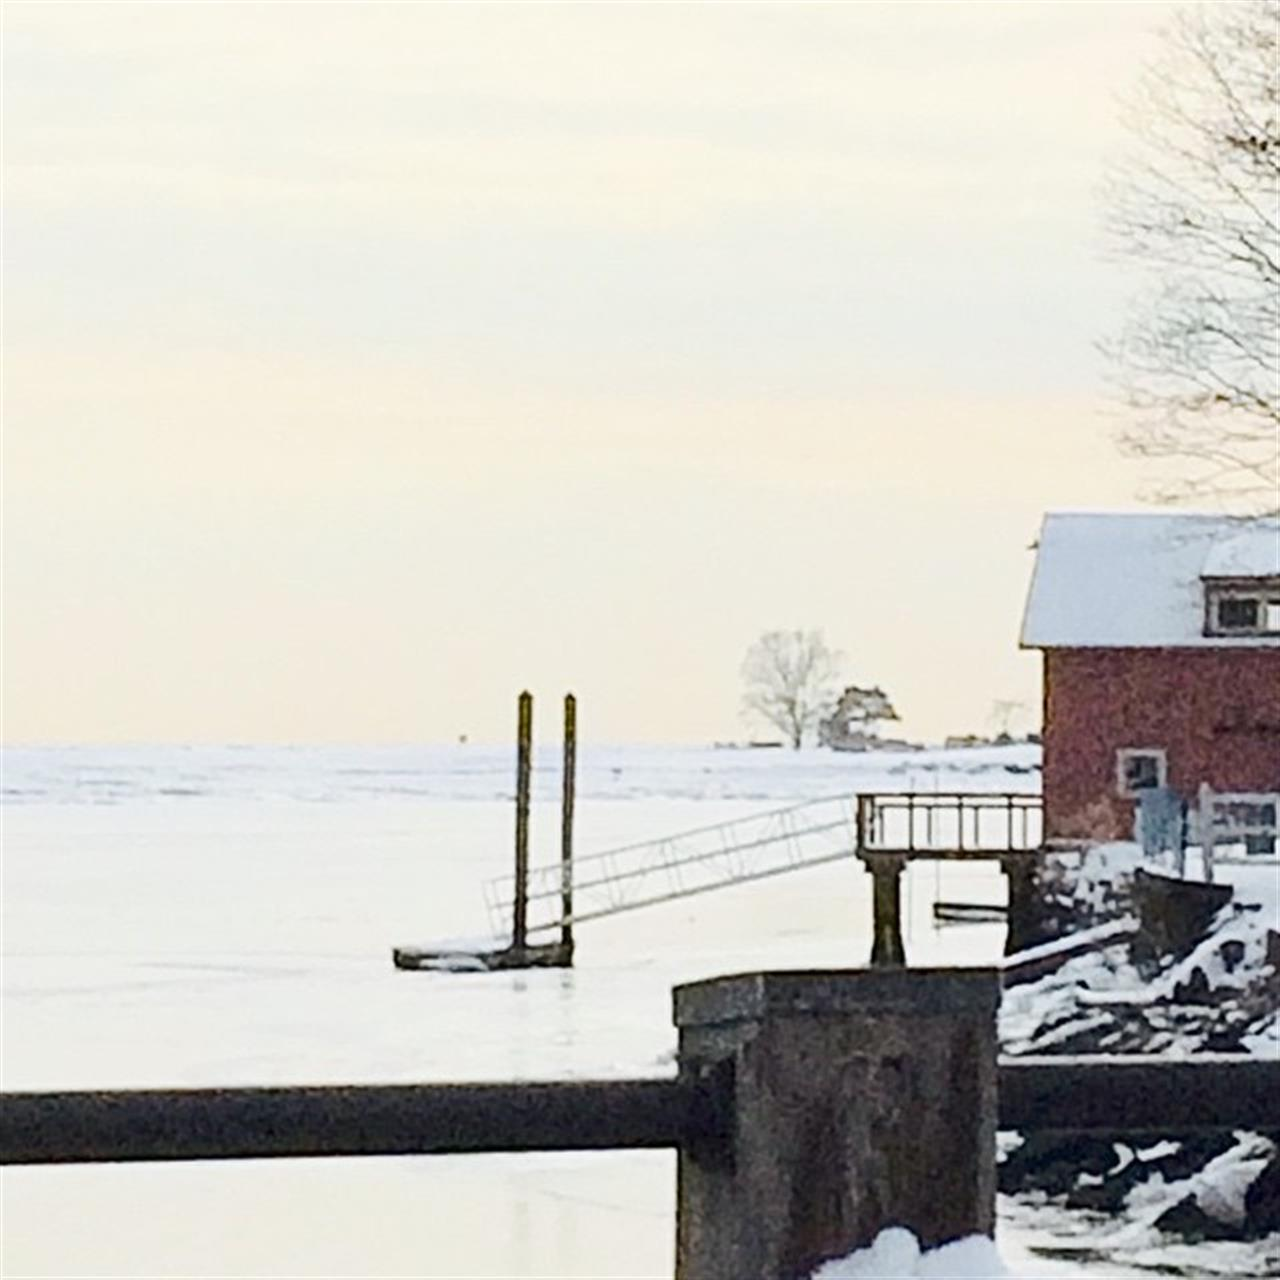 My favorite bridge in ice and snow. #ilovefairfieldct #sascocreek #sea #ski #coastalconnecticut #LeadingRELocal